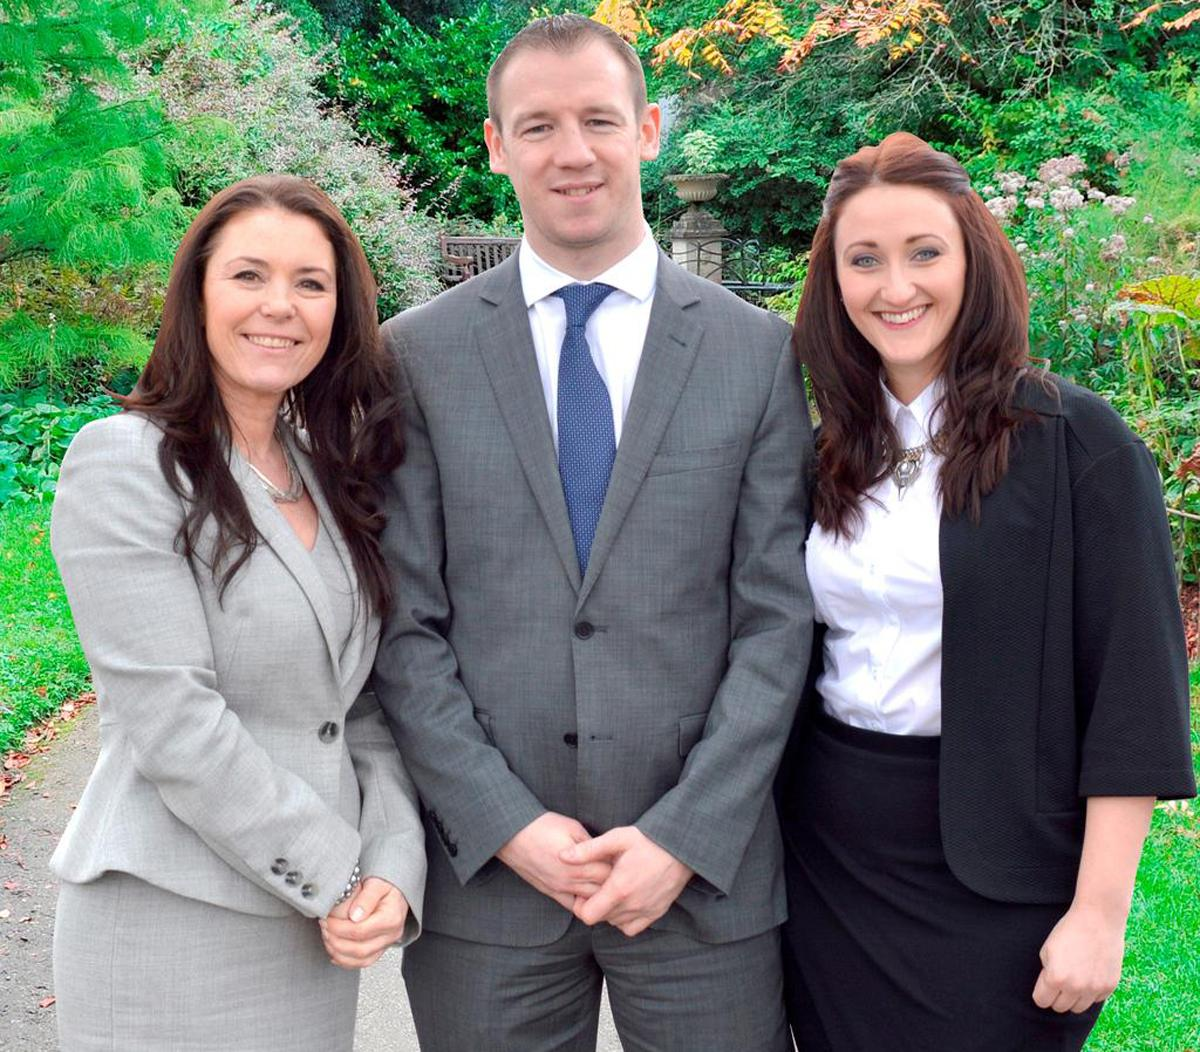 Jill Russell, Anthony Woodhouse and Phillipa Donnison make up the new spa and leisure team at Ramside Hall / The Journal